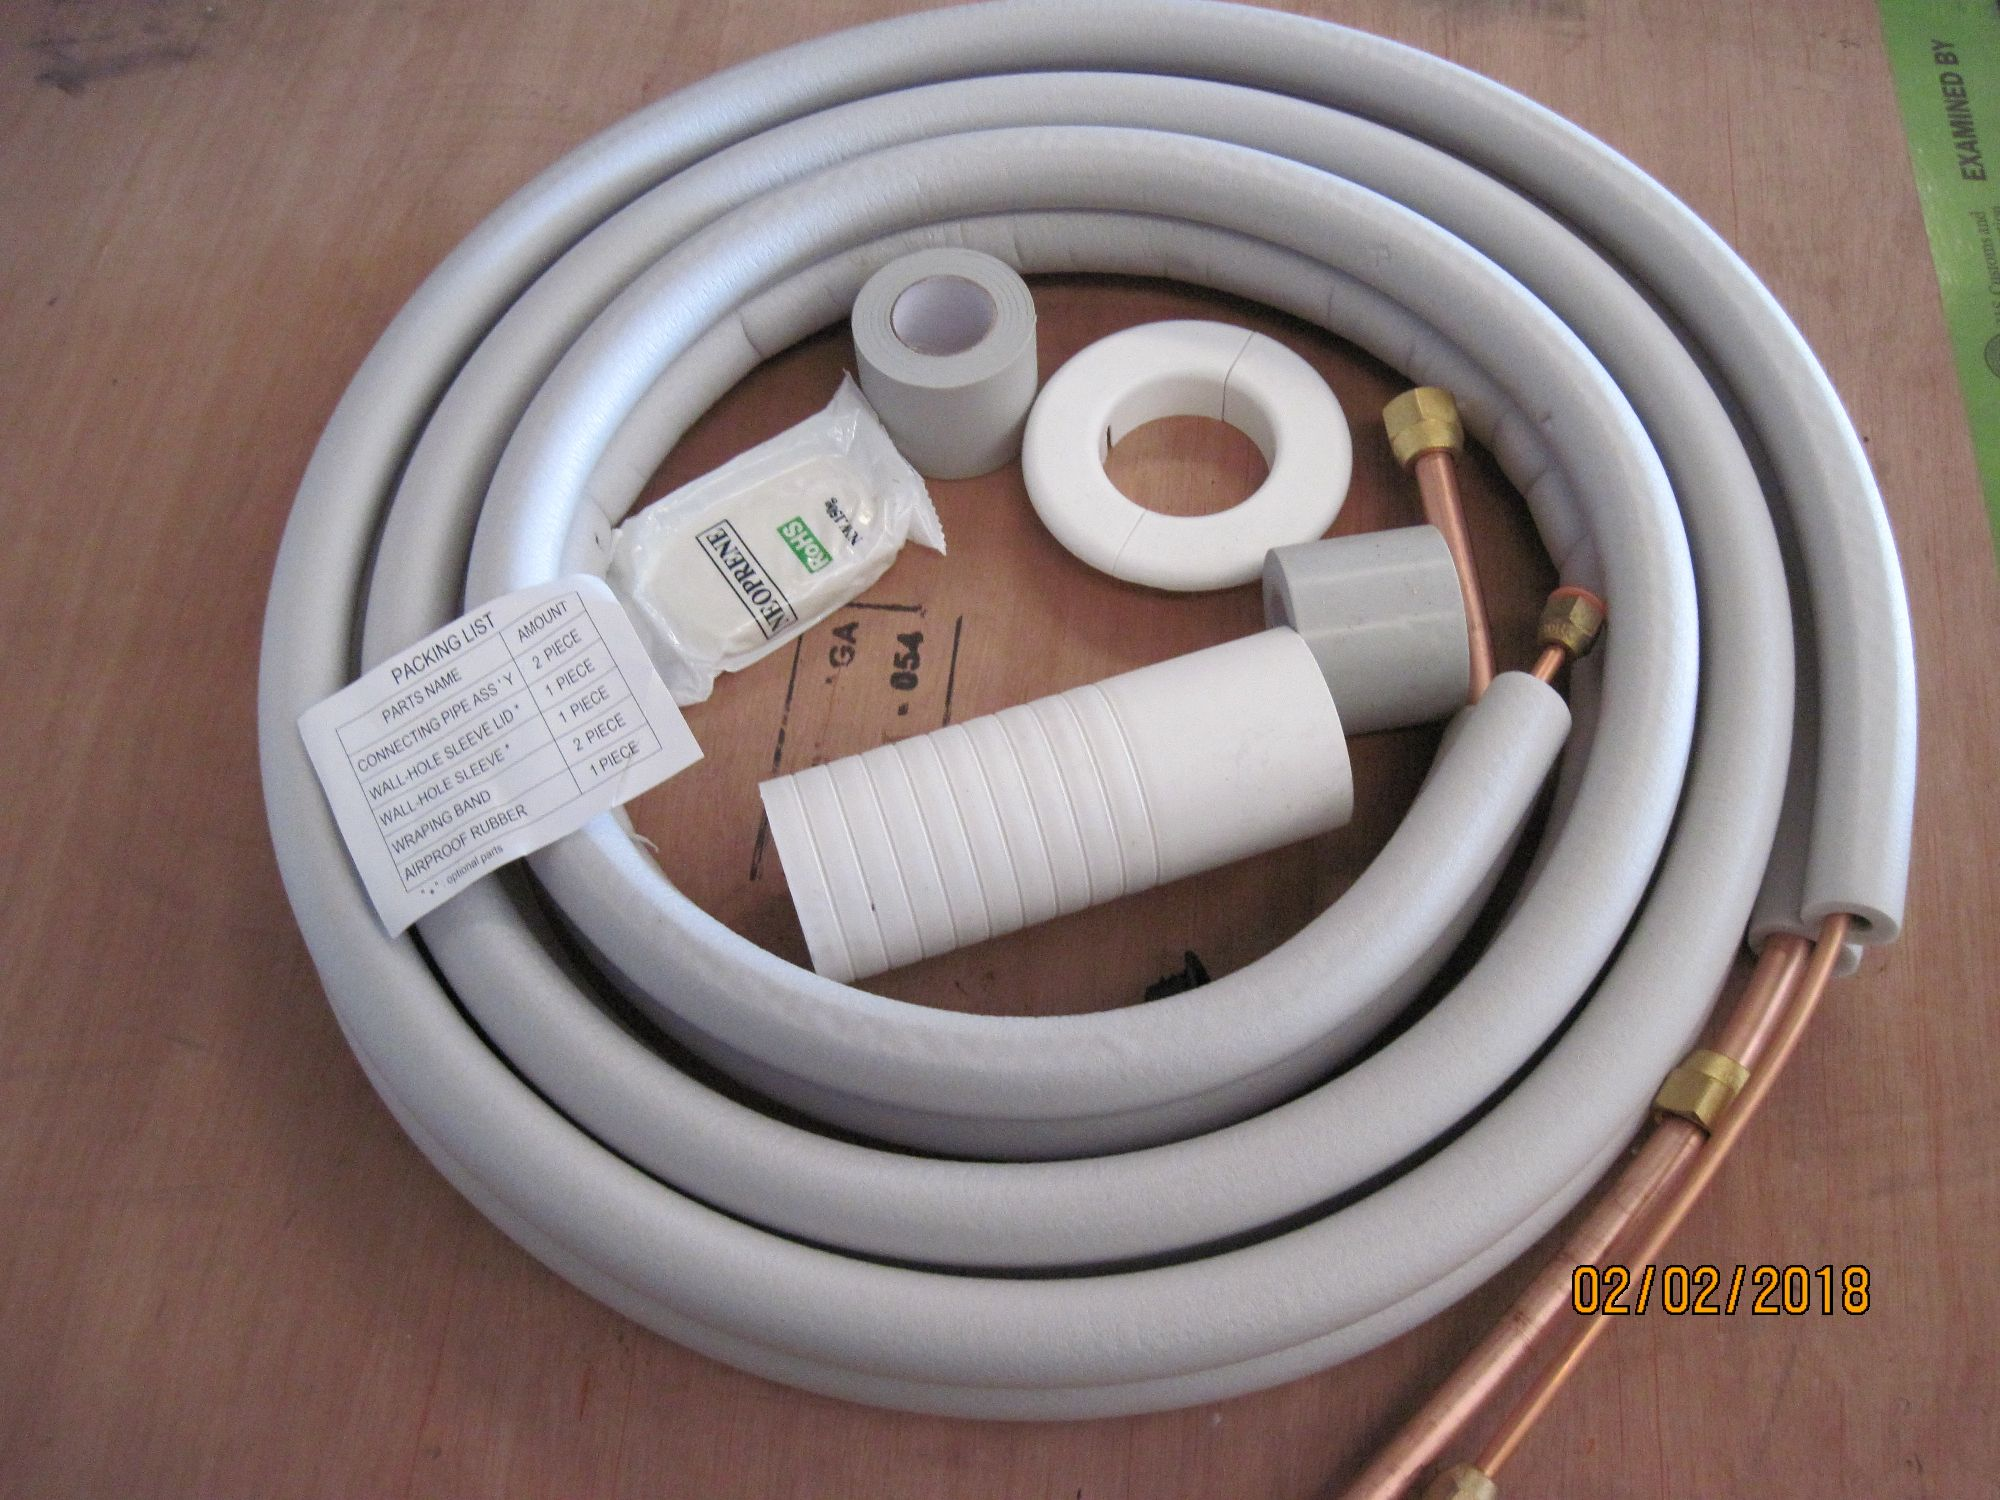 Copper Pipes/Cables | CWS - Asset Management and Sales